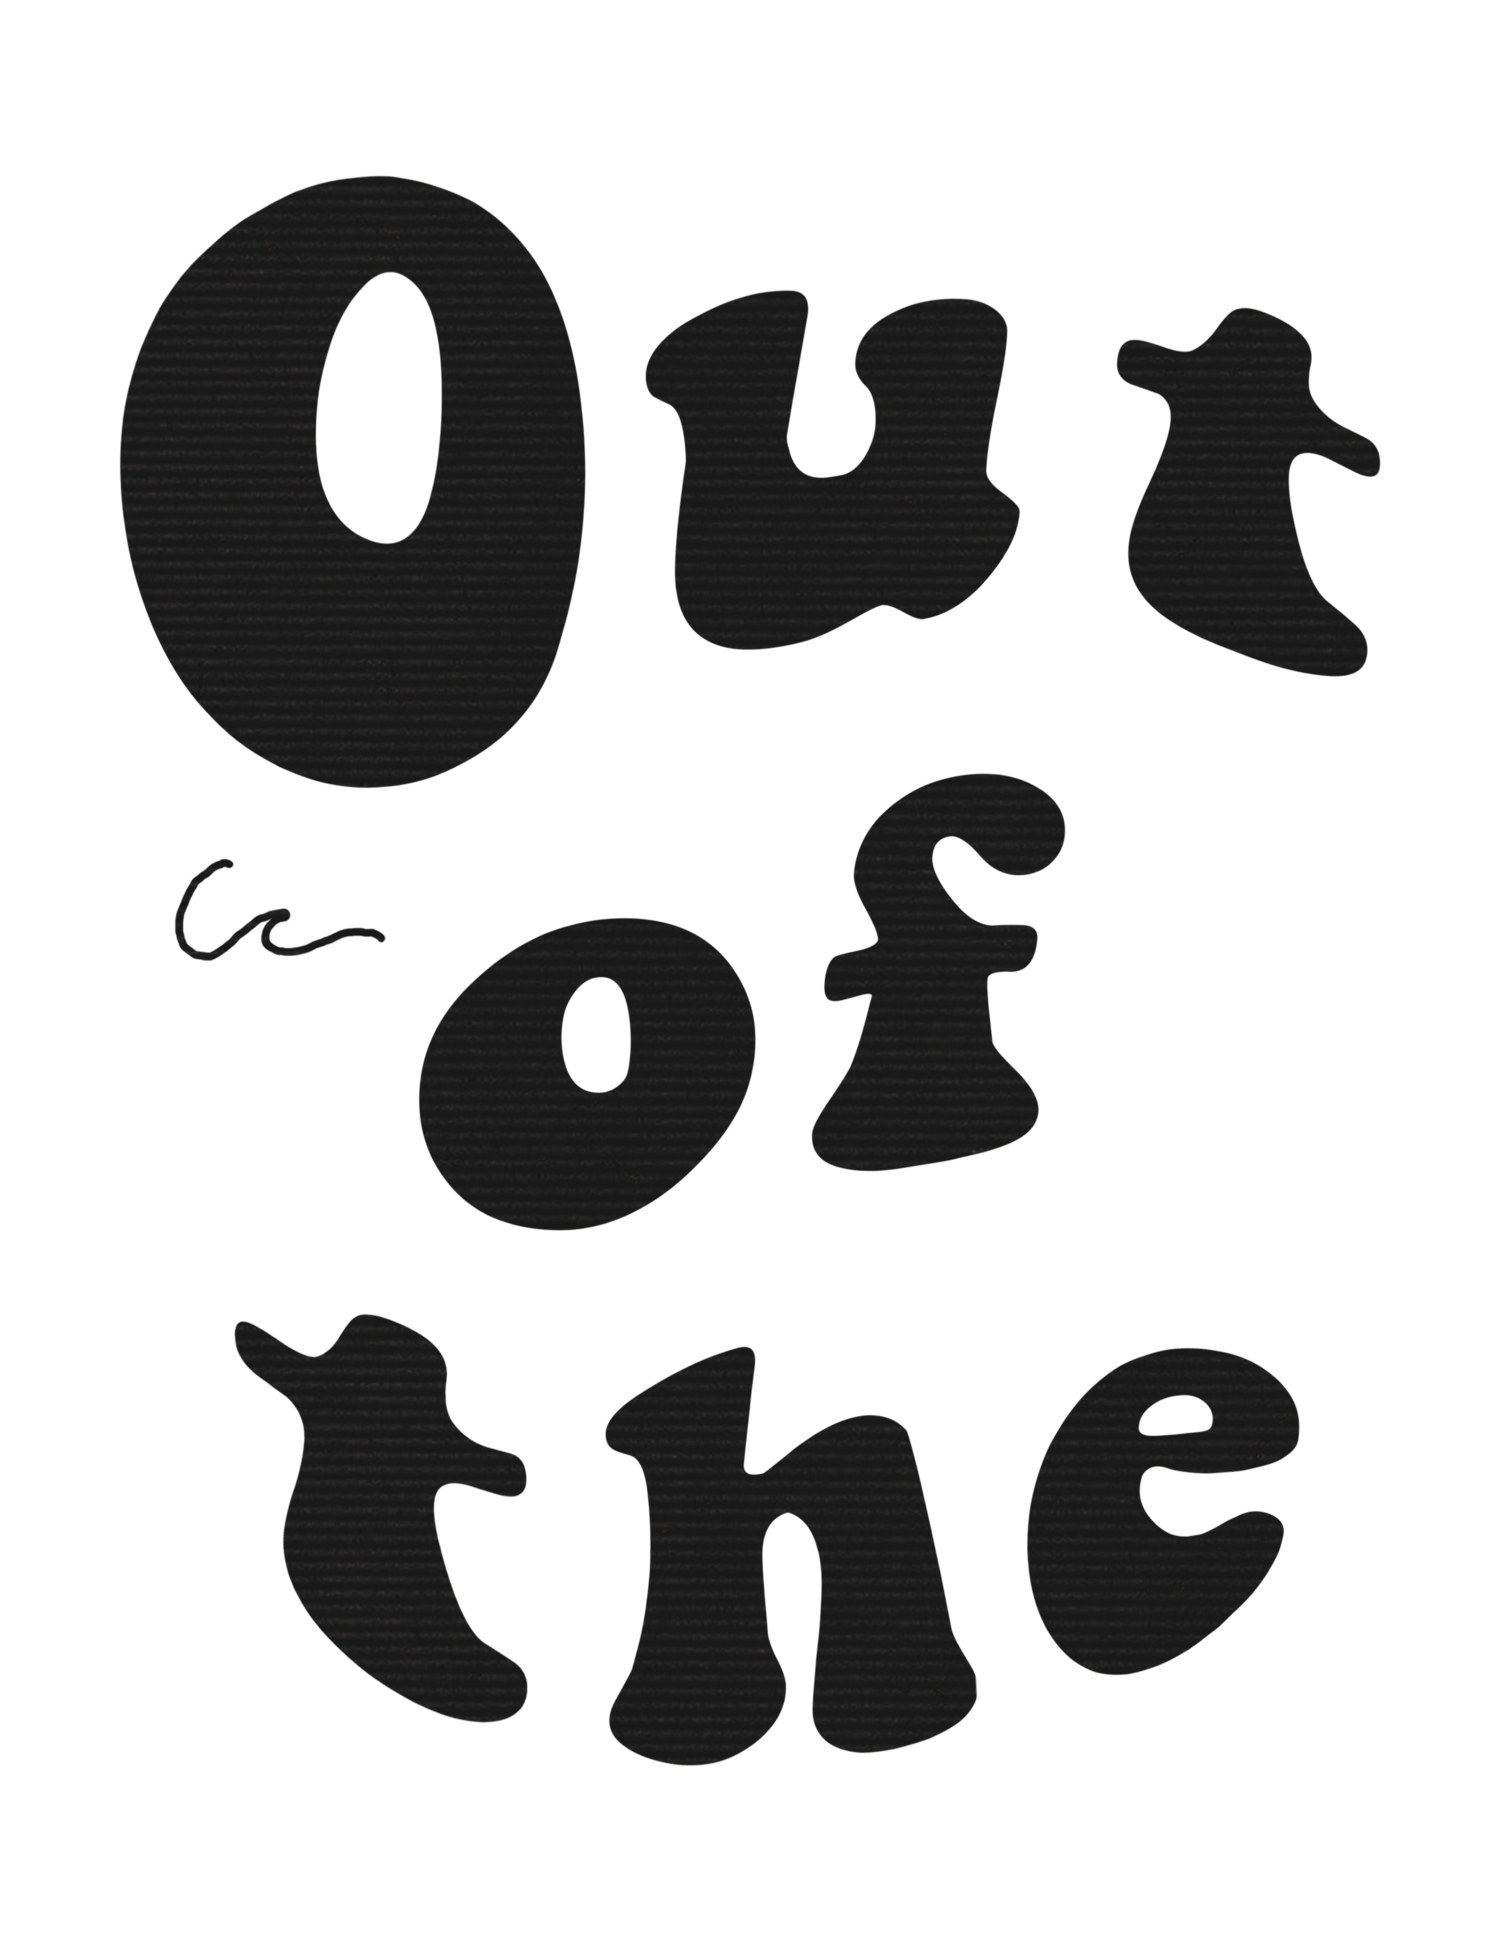 Out of the